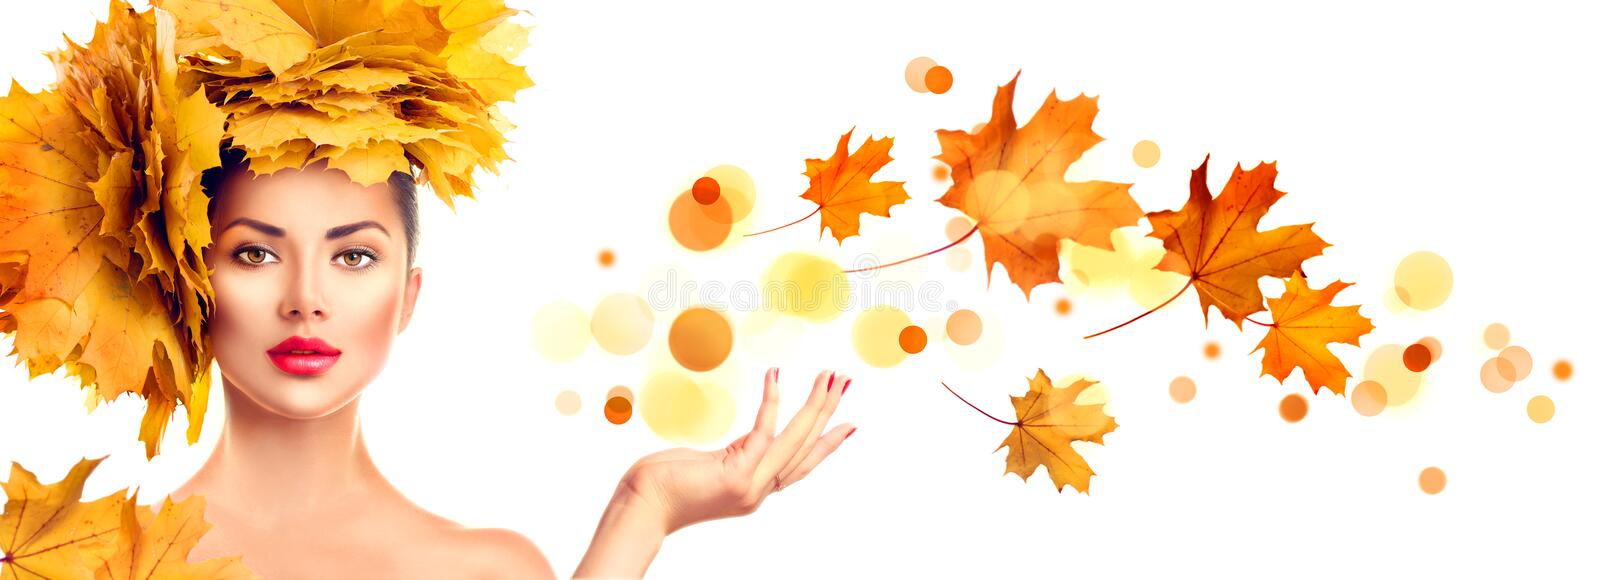 Model girl with autumn bright leaves hairstyle showing copyspace on open hand palm royalty free stock image